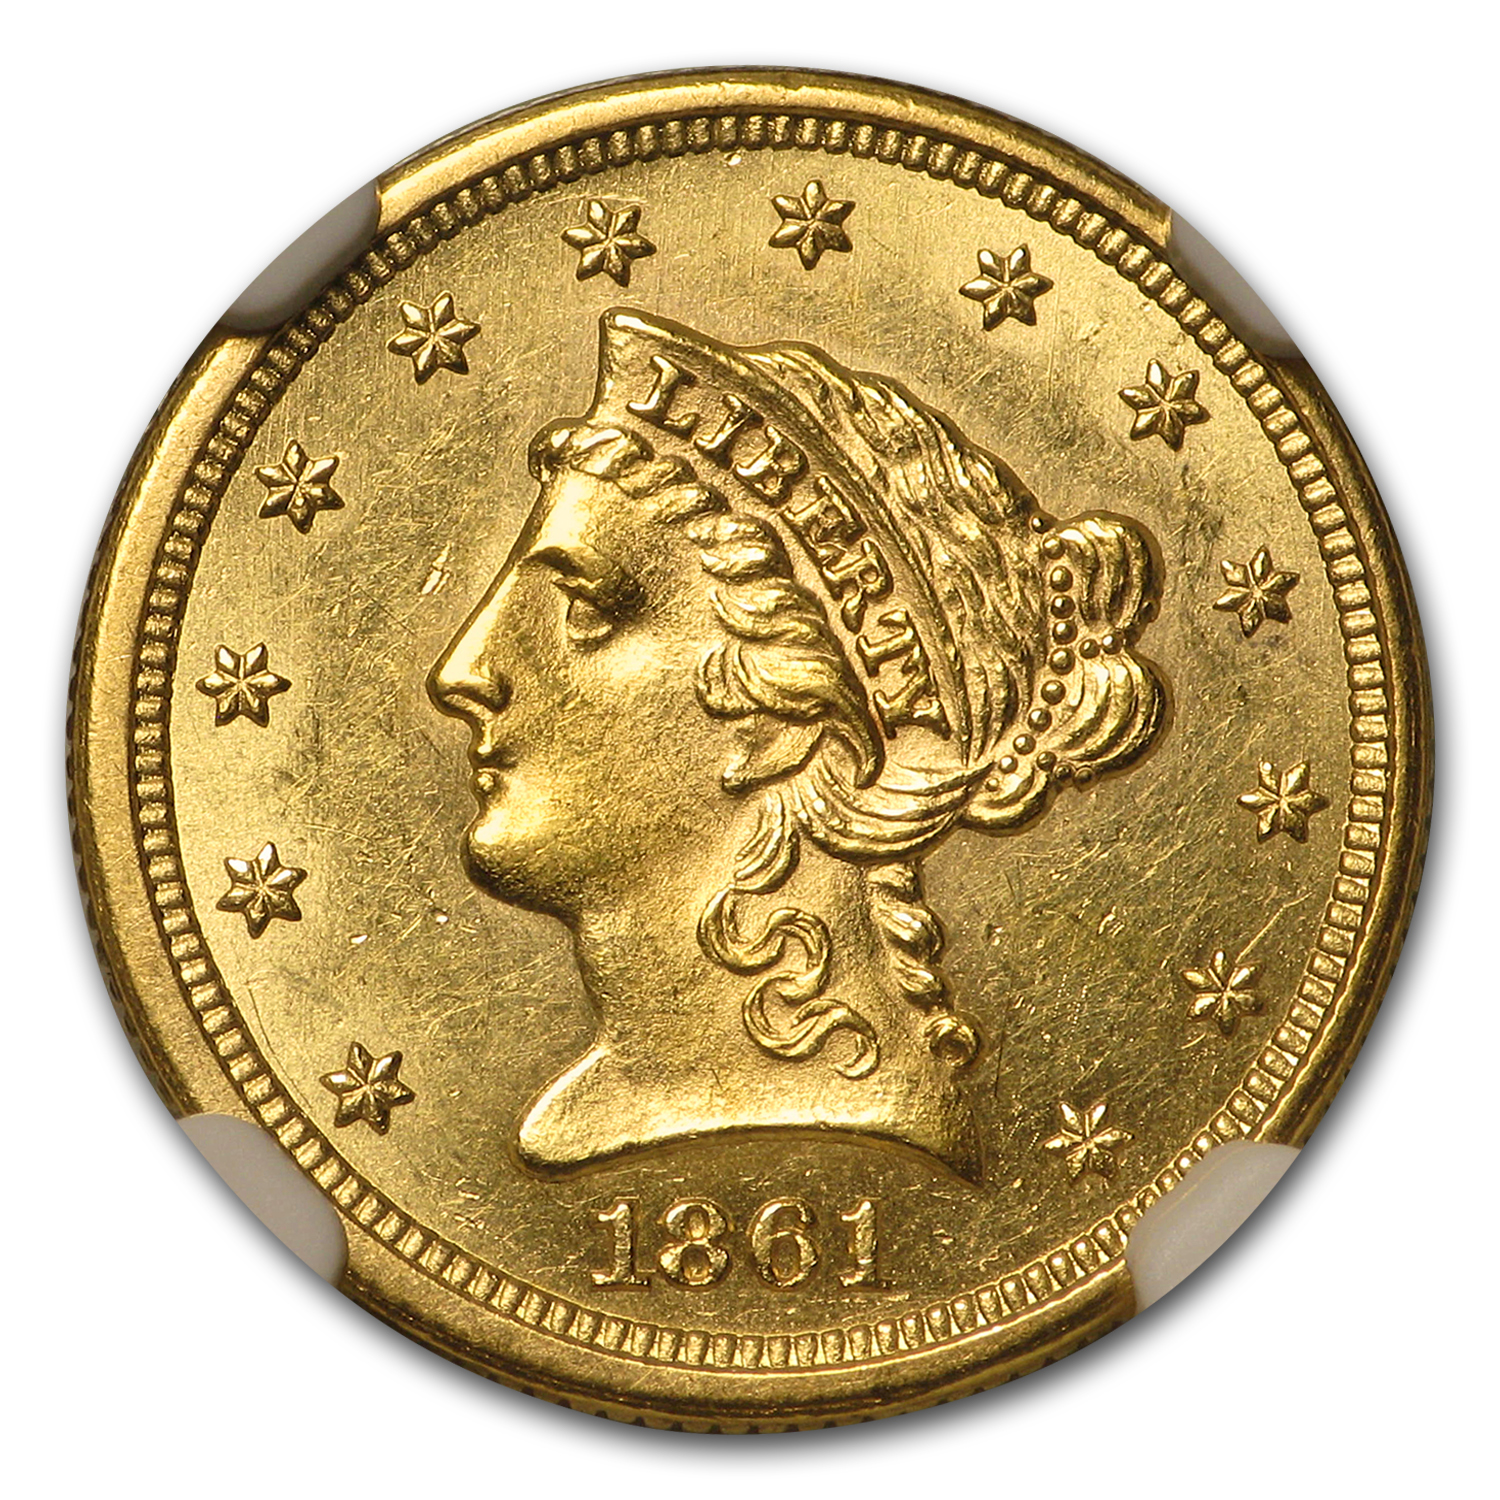 1861 $2.50 Liberty Gold Quarter Eagle - Type 2 Rev - MS-61 NGC